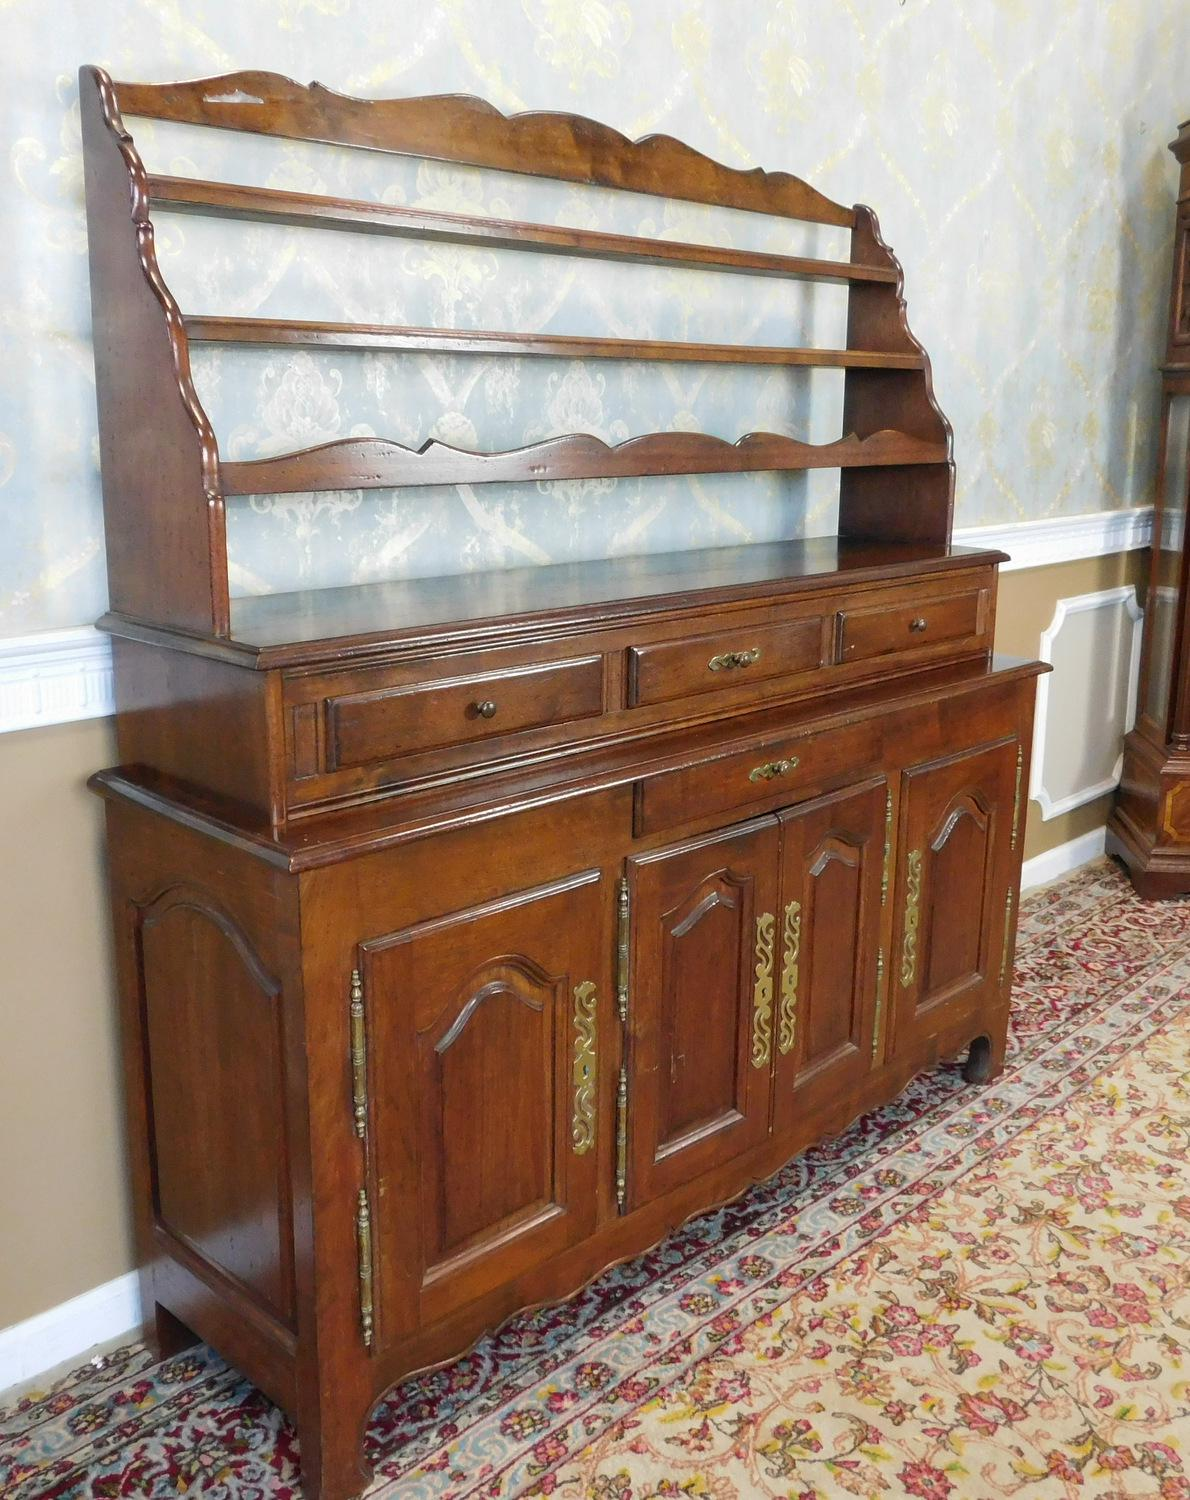 Quality French Made Oak Dining Room Buffet w/ Open Plate Rack Hutch c1970s - Image  sc 1 st  Chairish & Quality French Made Oak Dining Room Buffet w/ Open Plate Rack Hutch ...